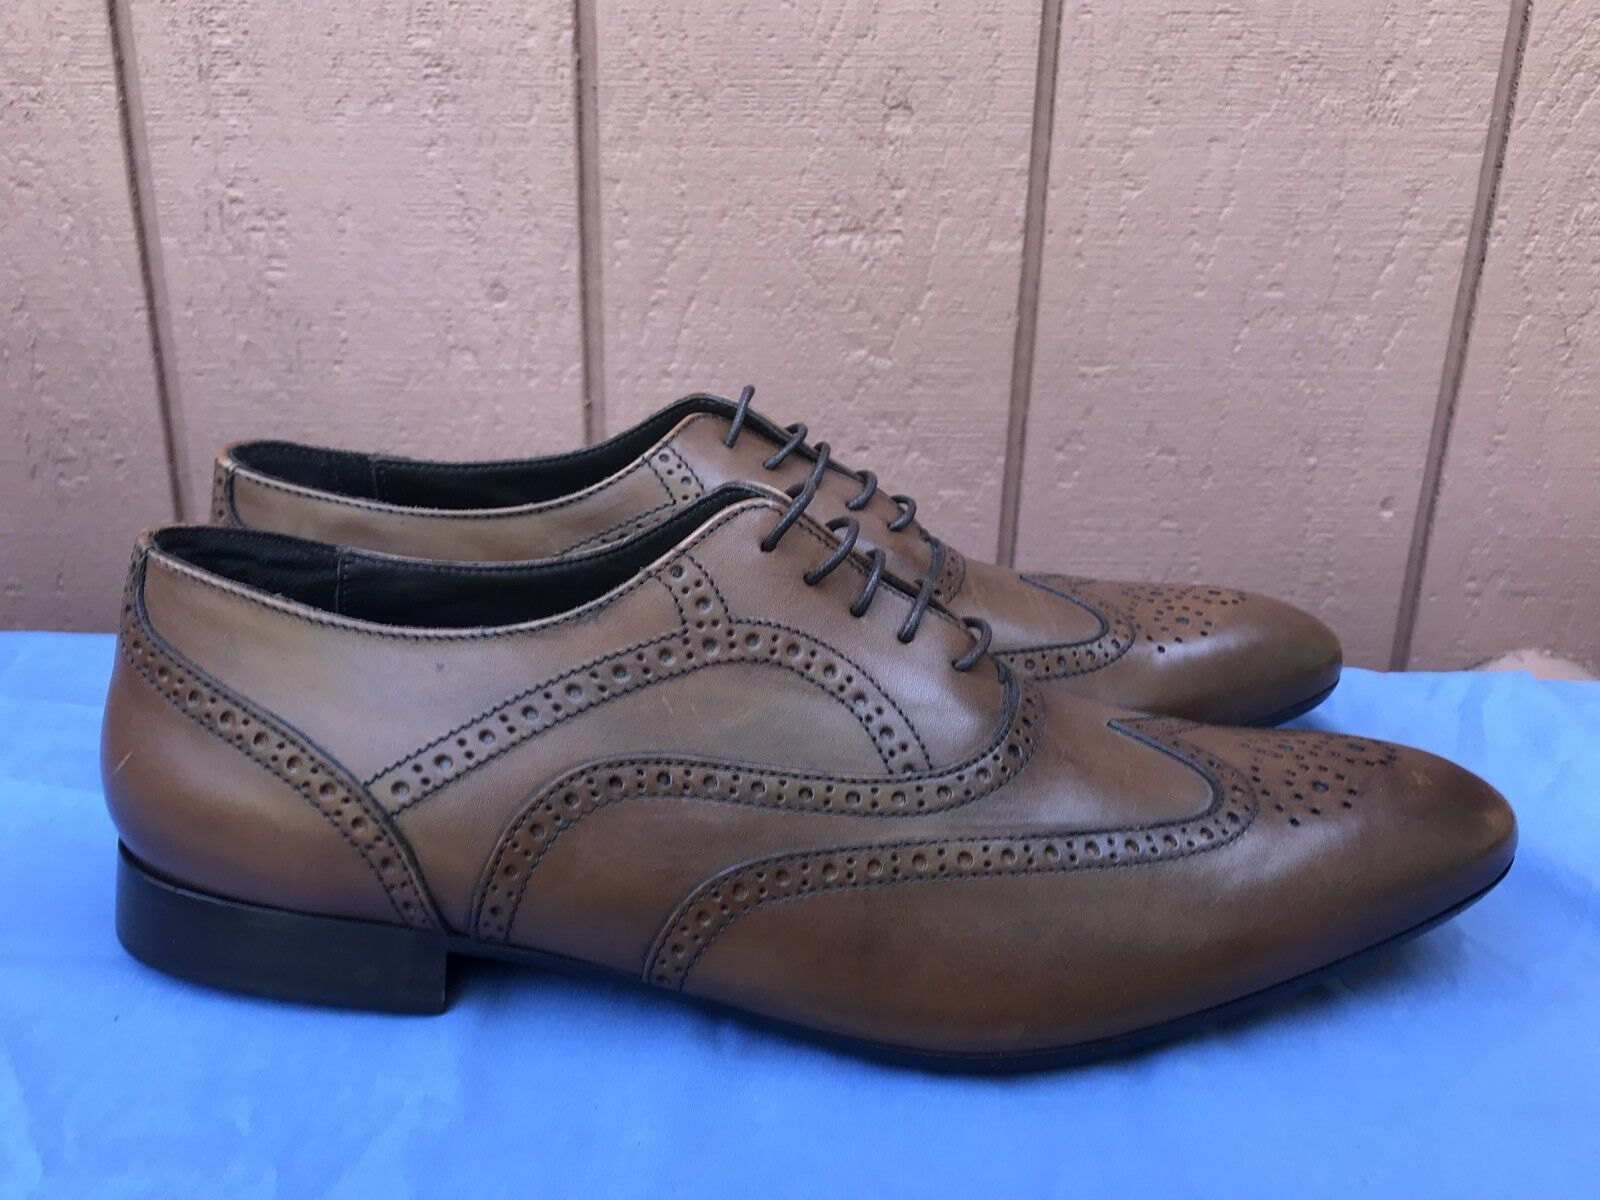 MINT A. TESTONI MEN'S 12M BASIC WINGTIP BROQUE BROWN LEATHER LACE UP SHOES A4